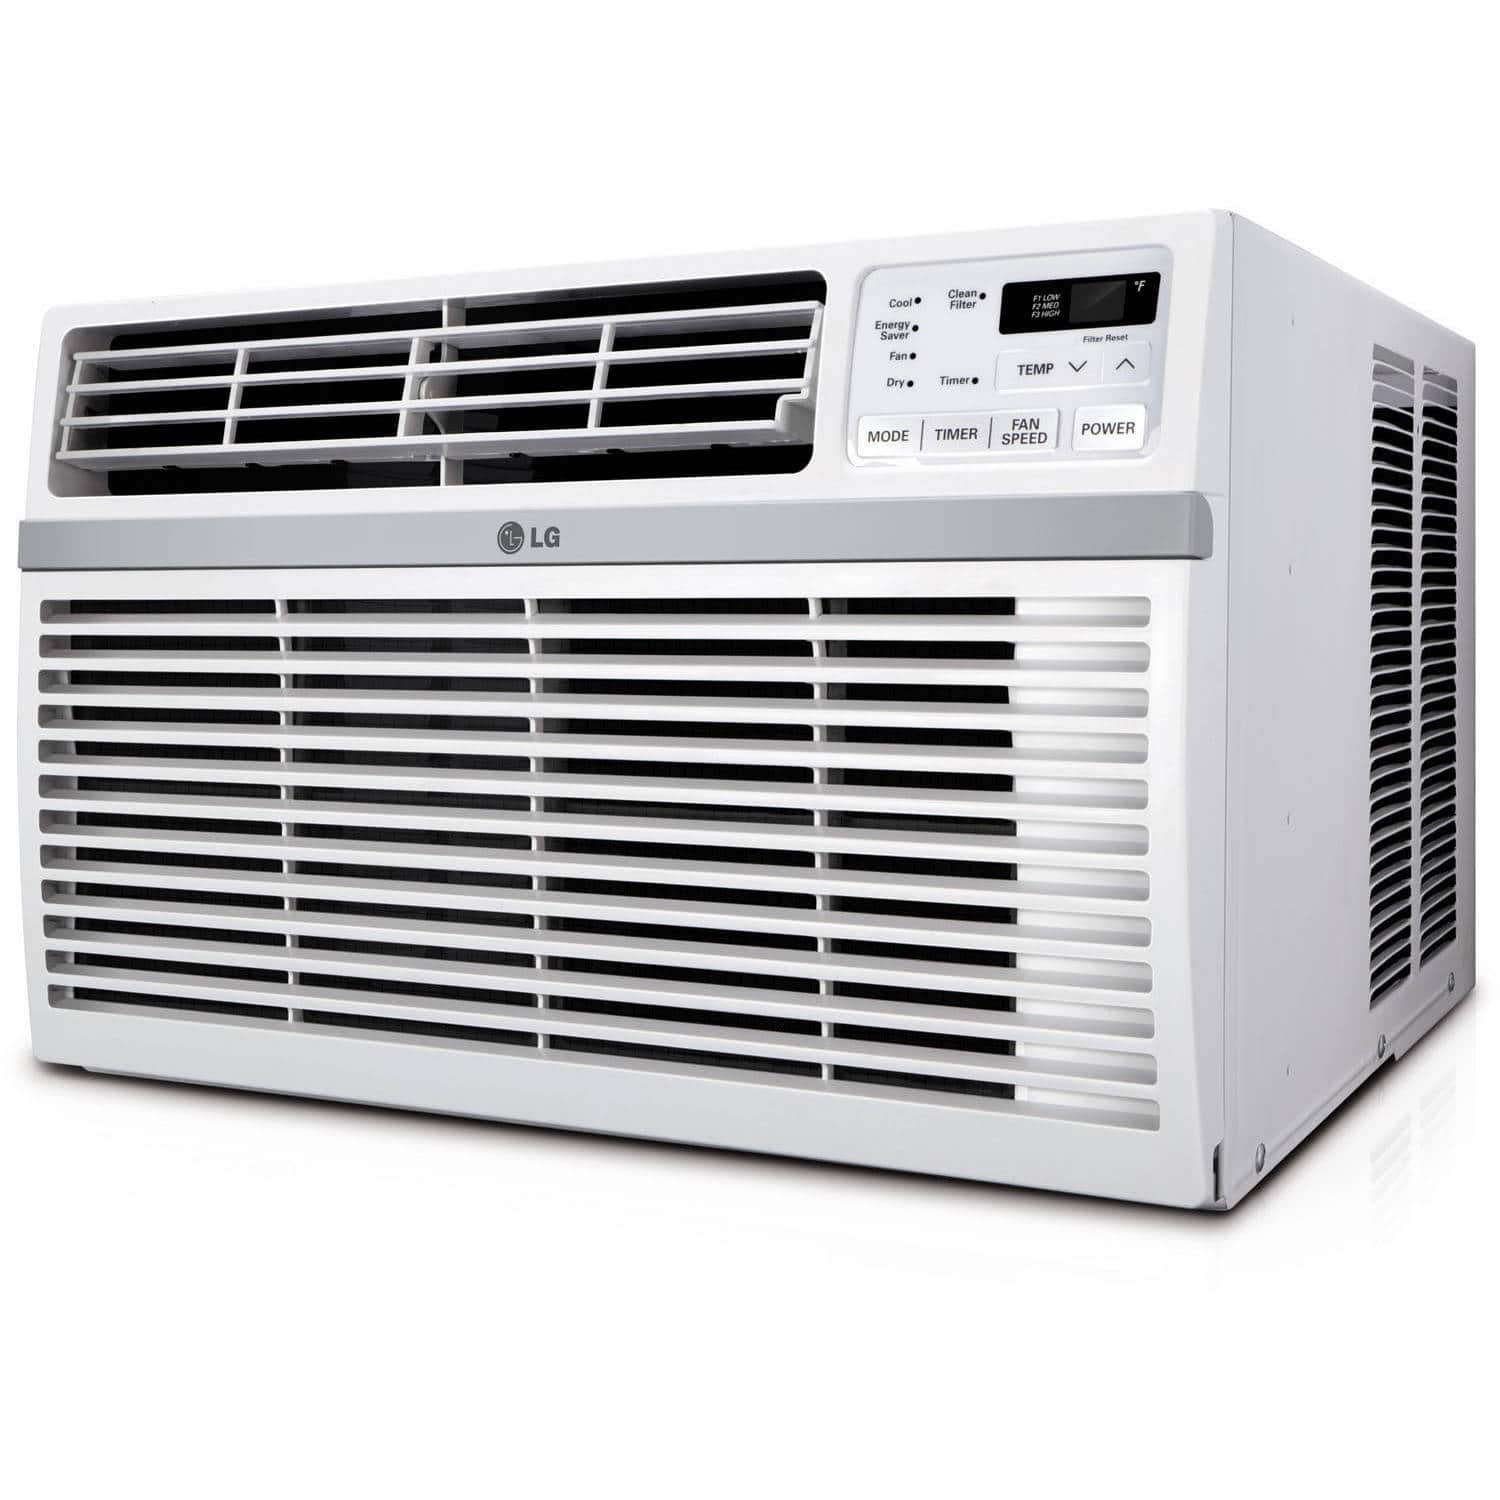 LG LW8016ER 8,000 BTU 115V Window-Mounted Air Conditioner with Remote Control ~ On sale for: $219.00 ~ Down from: $309.97